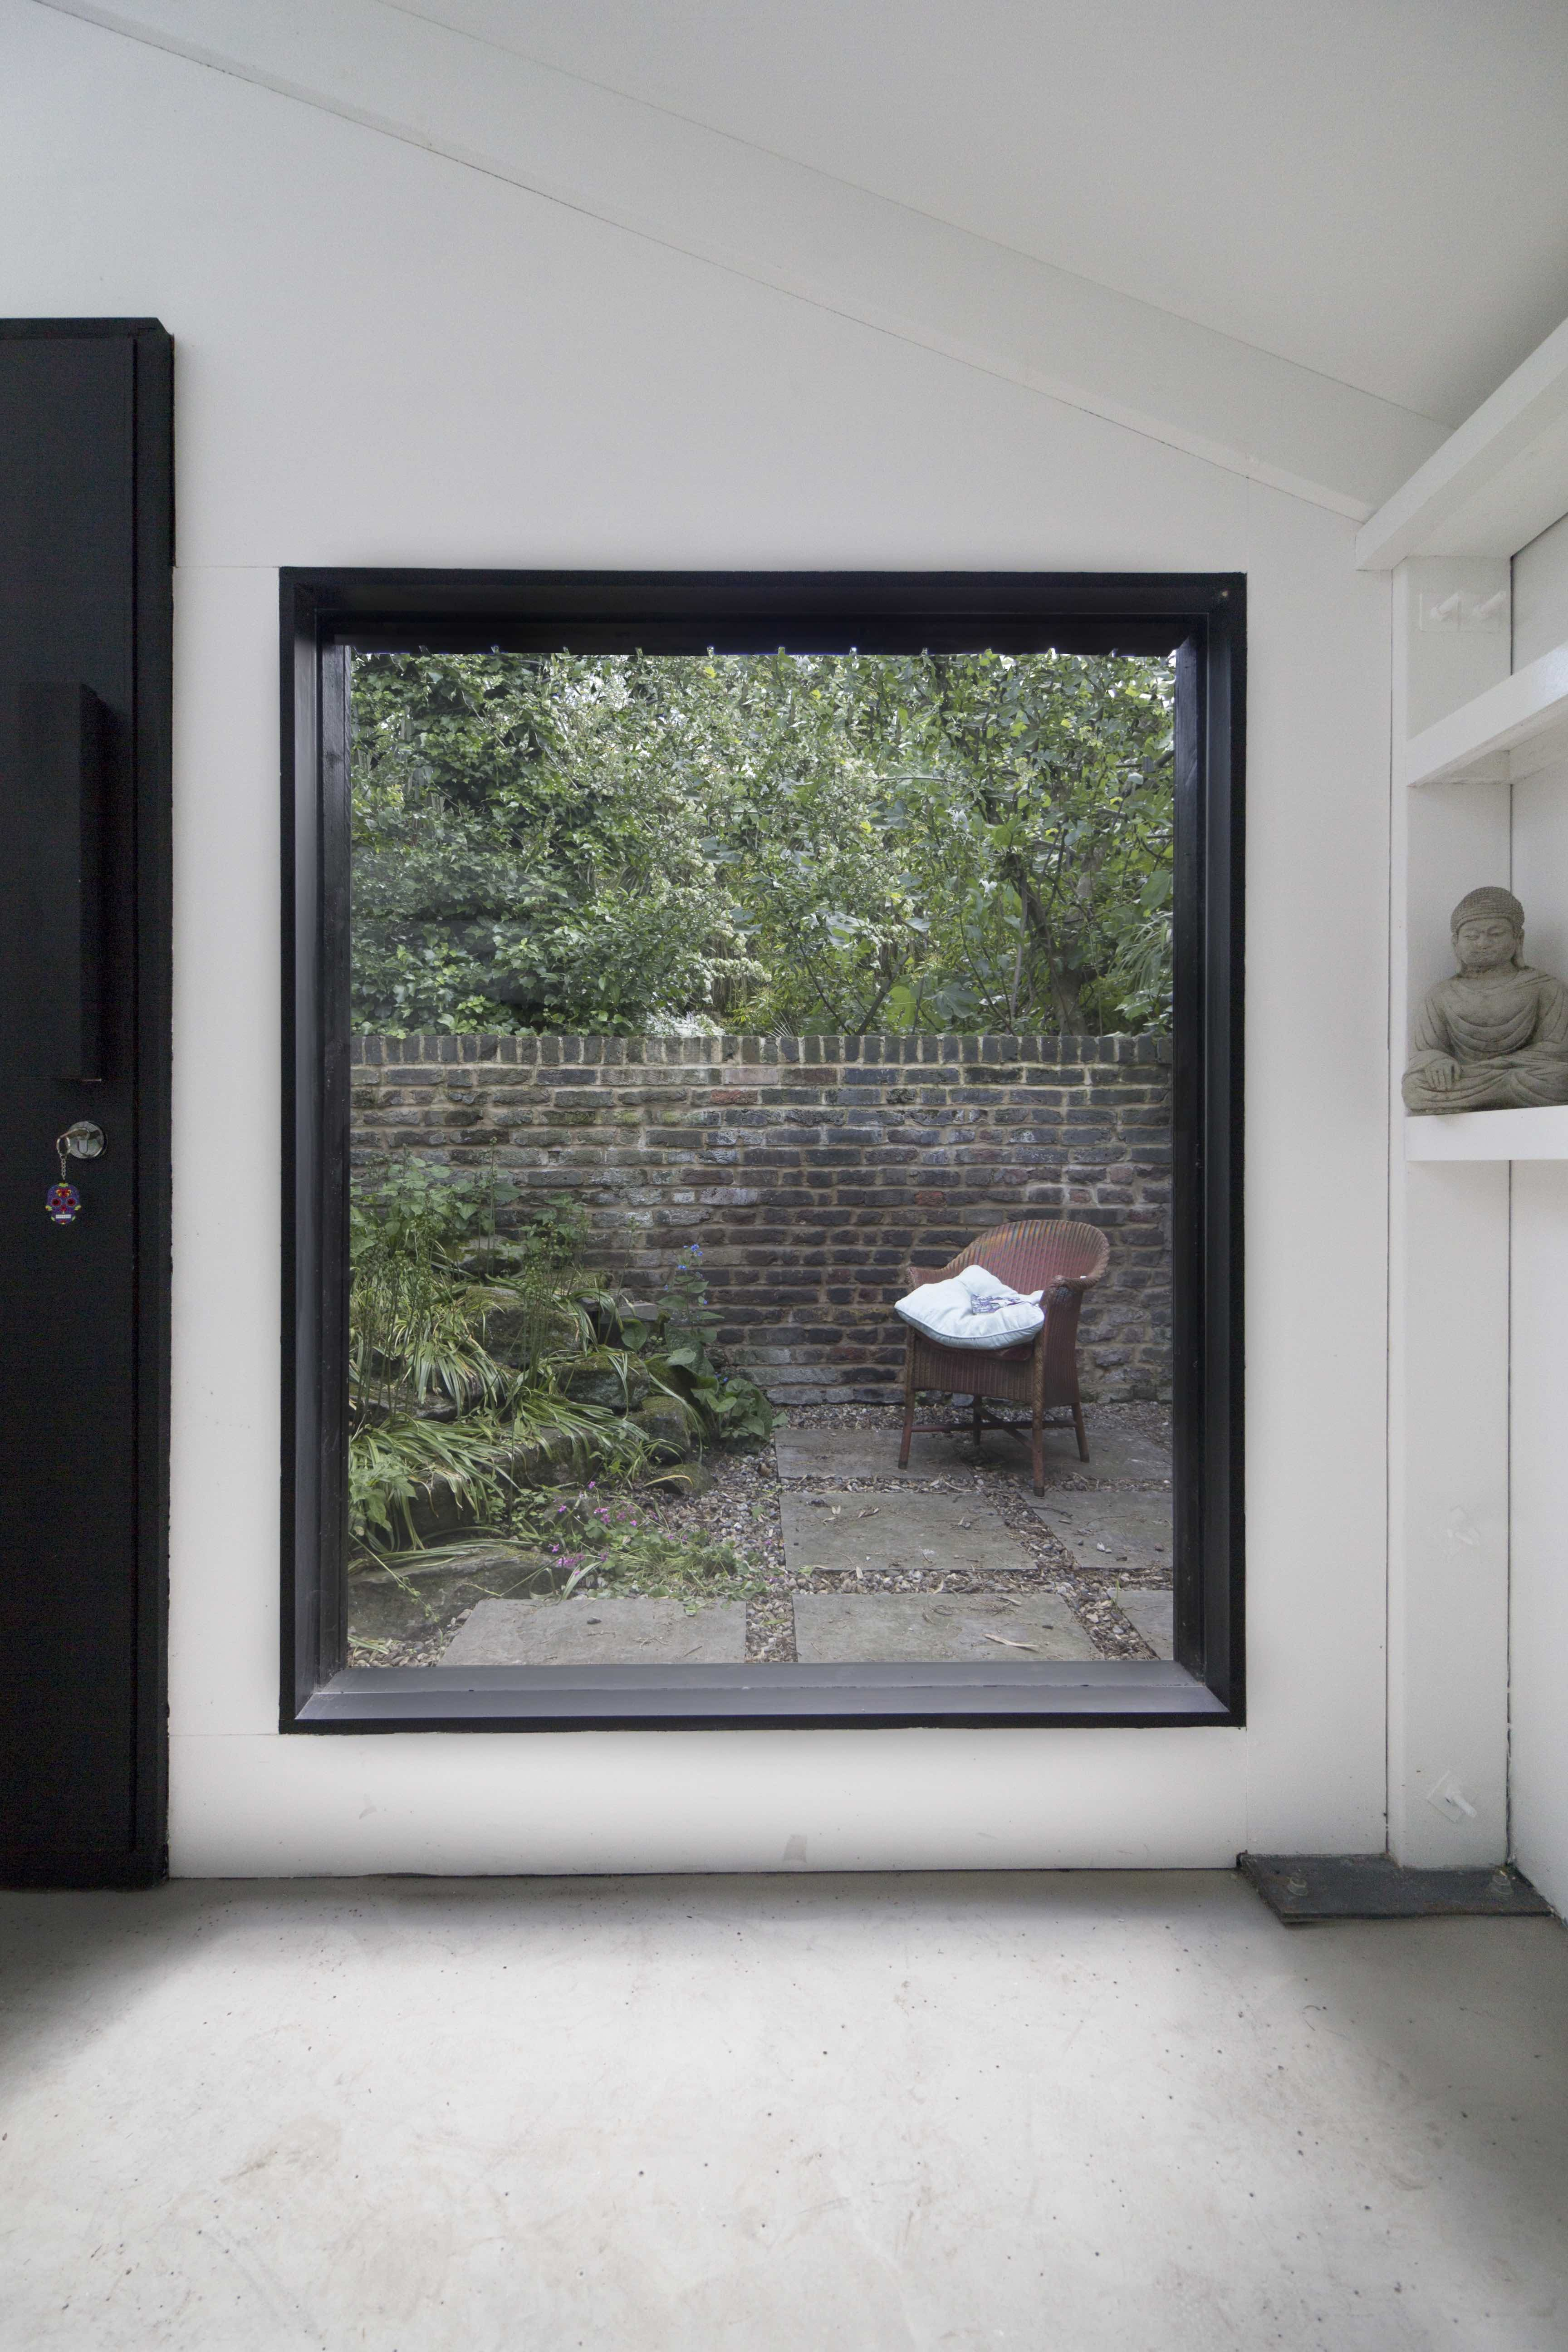 Find your ideal home design pro on designfor-me.com - get matched and see who's interested in your home project. Click image to see more inspiration from our design pros Design by Benedetta, architect from Hackney, London #architecture #homedesign #modernhomes #homeinspiration #extensions #extensiondesign #extensioninspiration #extensionideas #houseextension #glazing #architecturalglazing #naturallight #architecturedetails